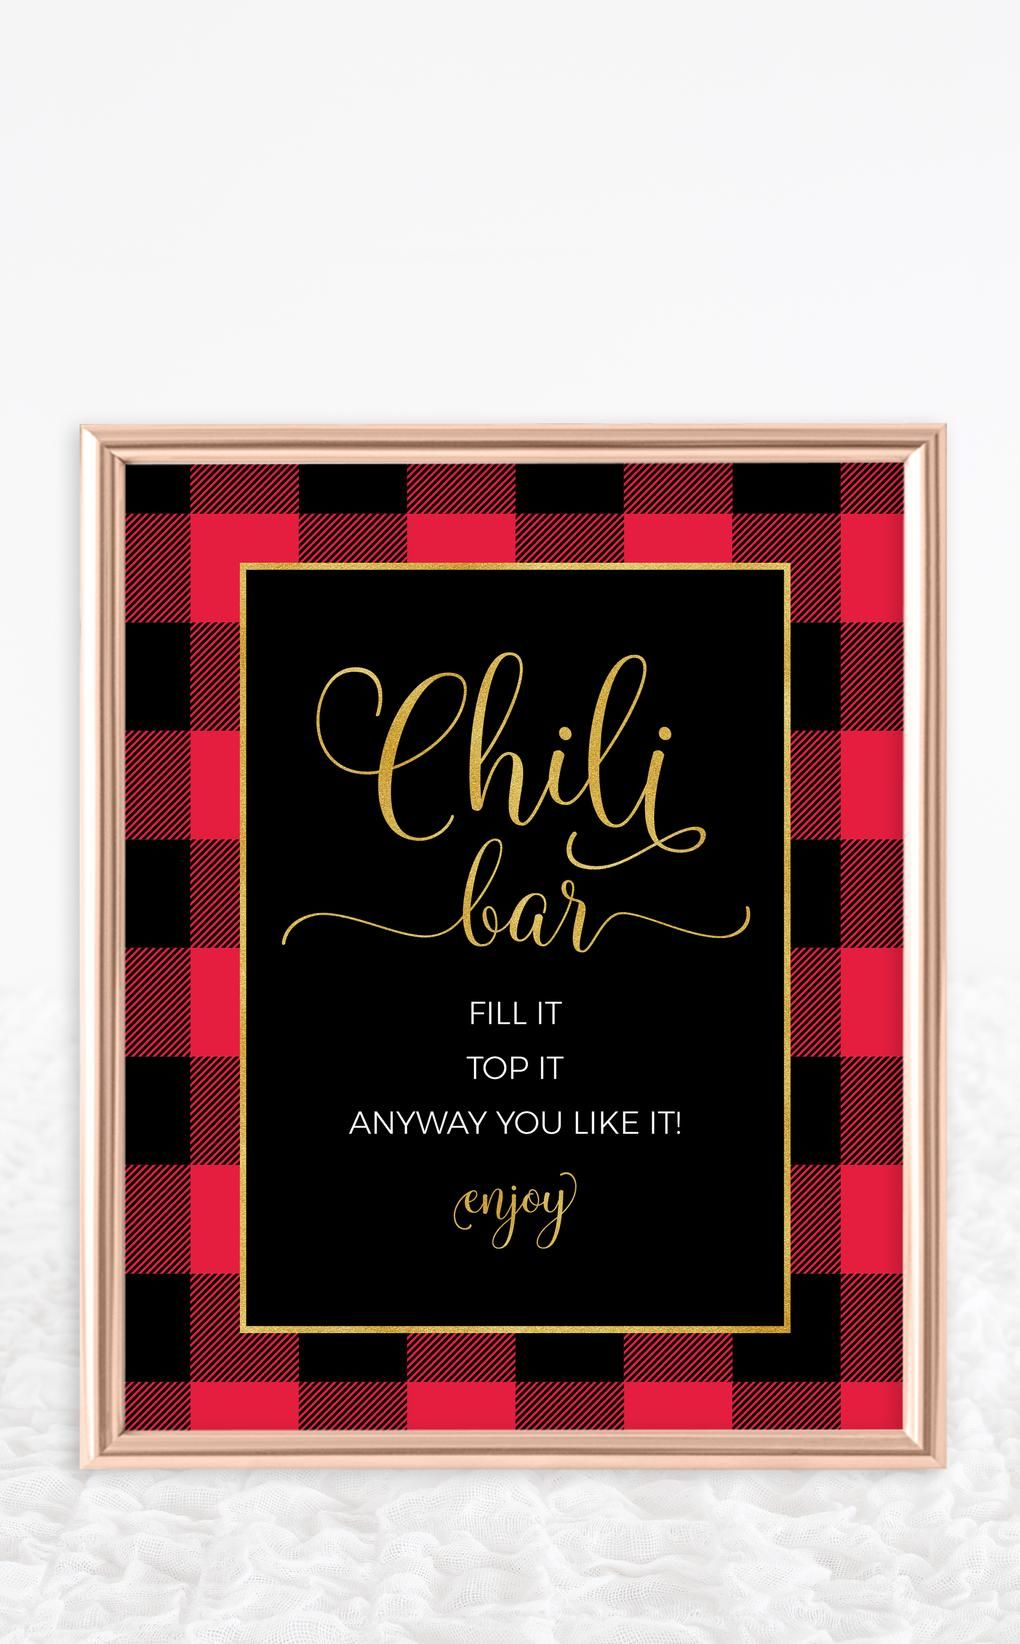 Flannel Chili Bar Kit #chilibar